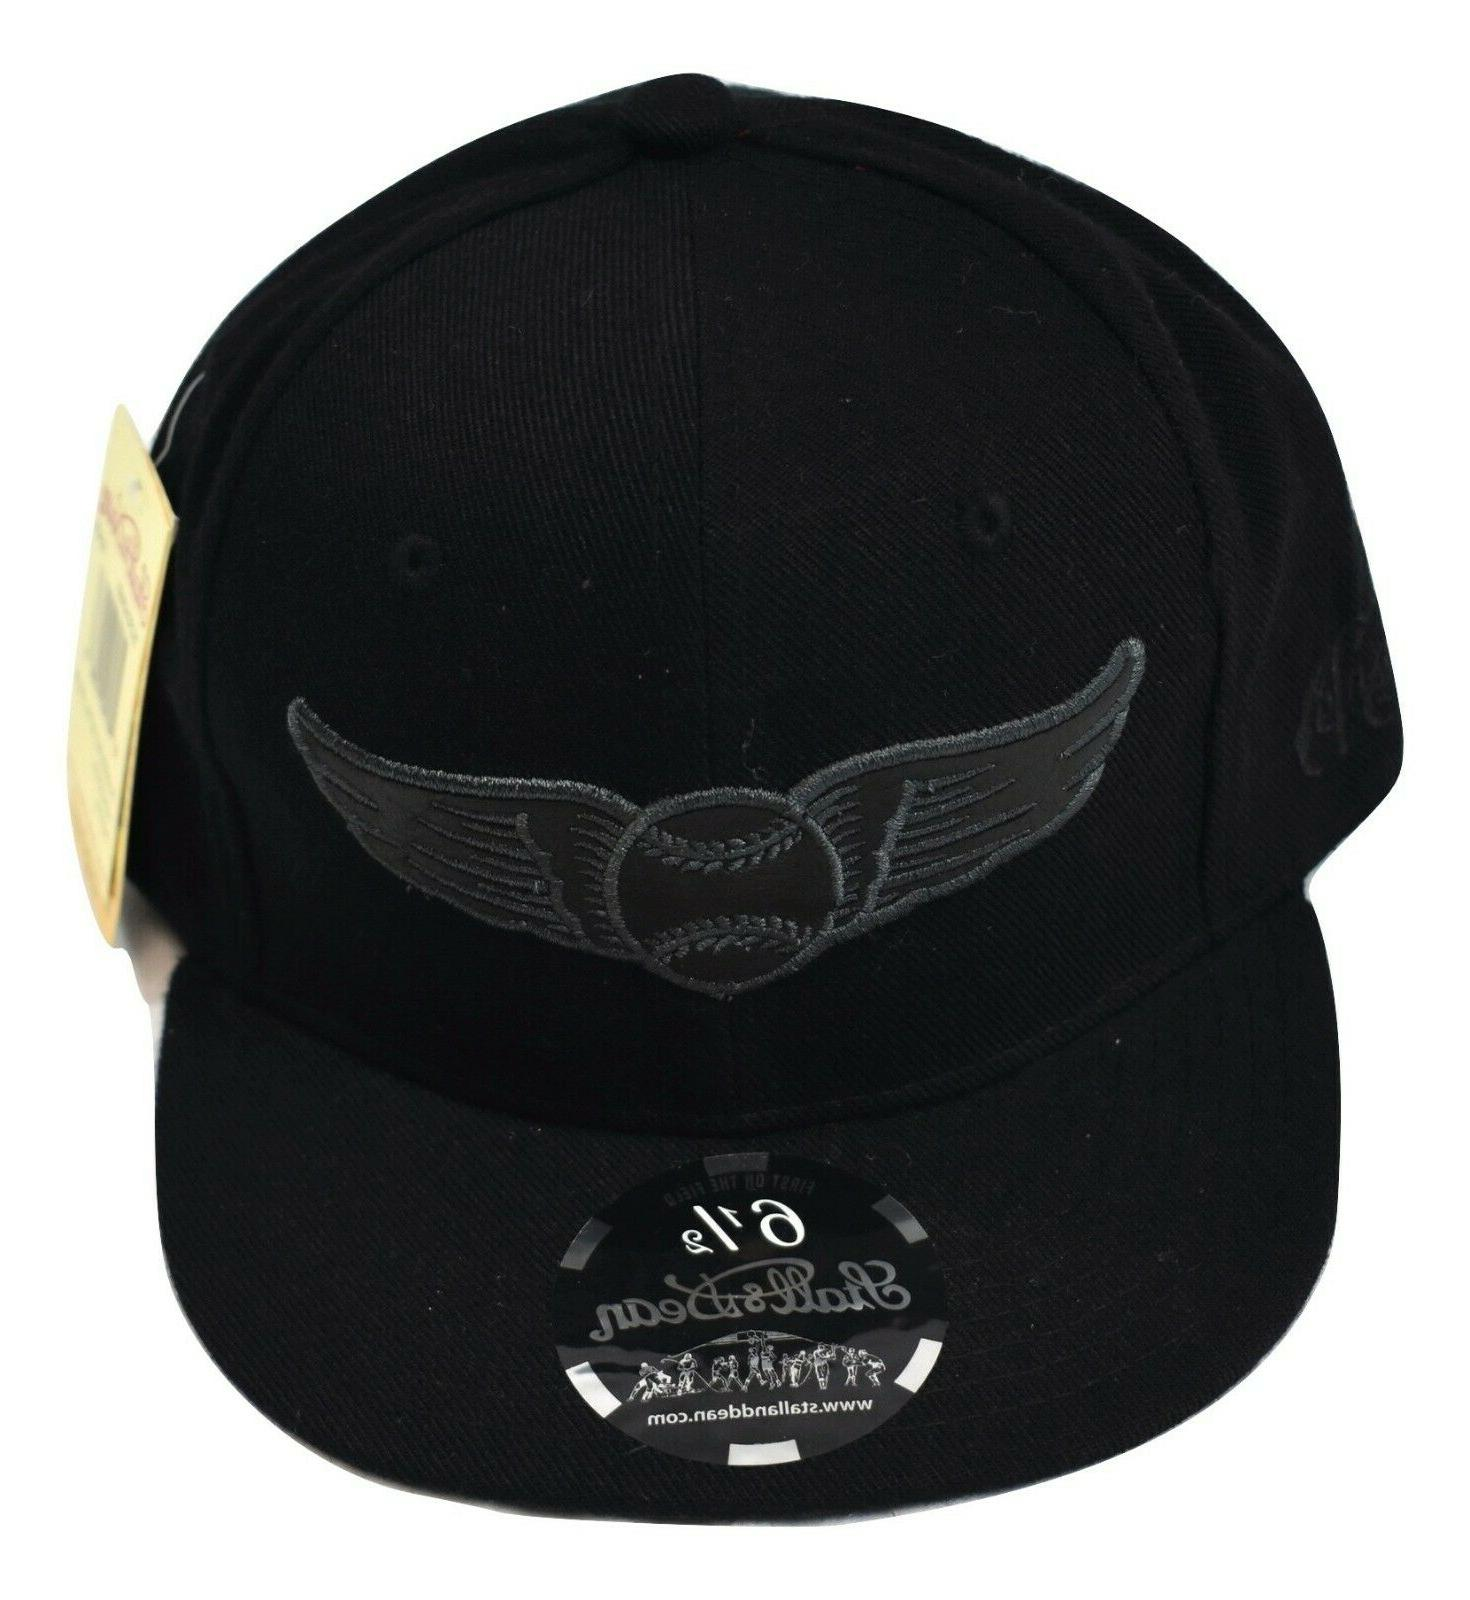 Stall & Dean Fitted Winged Baseball Cap Hat Pick Size 6 1/4